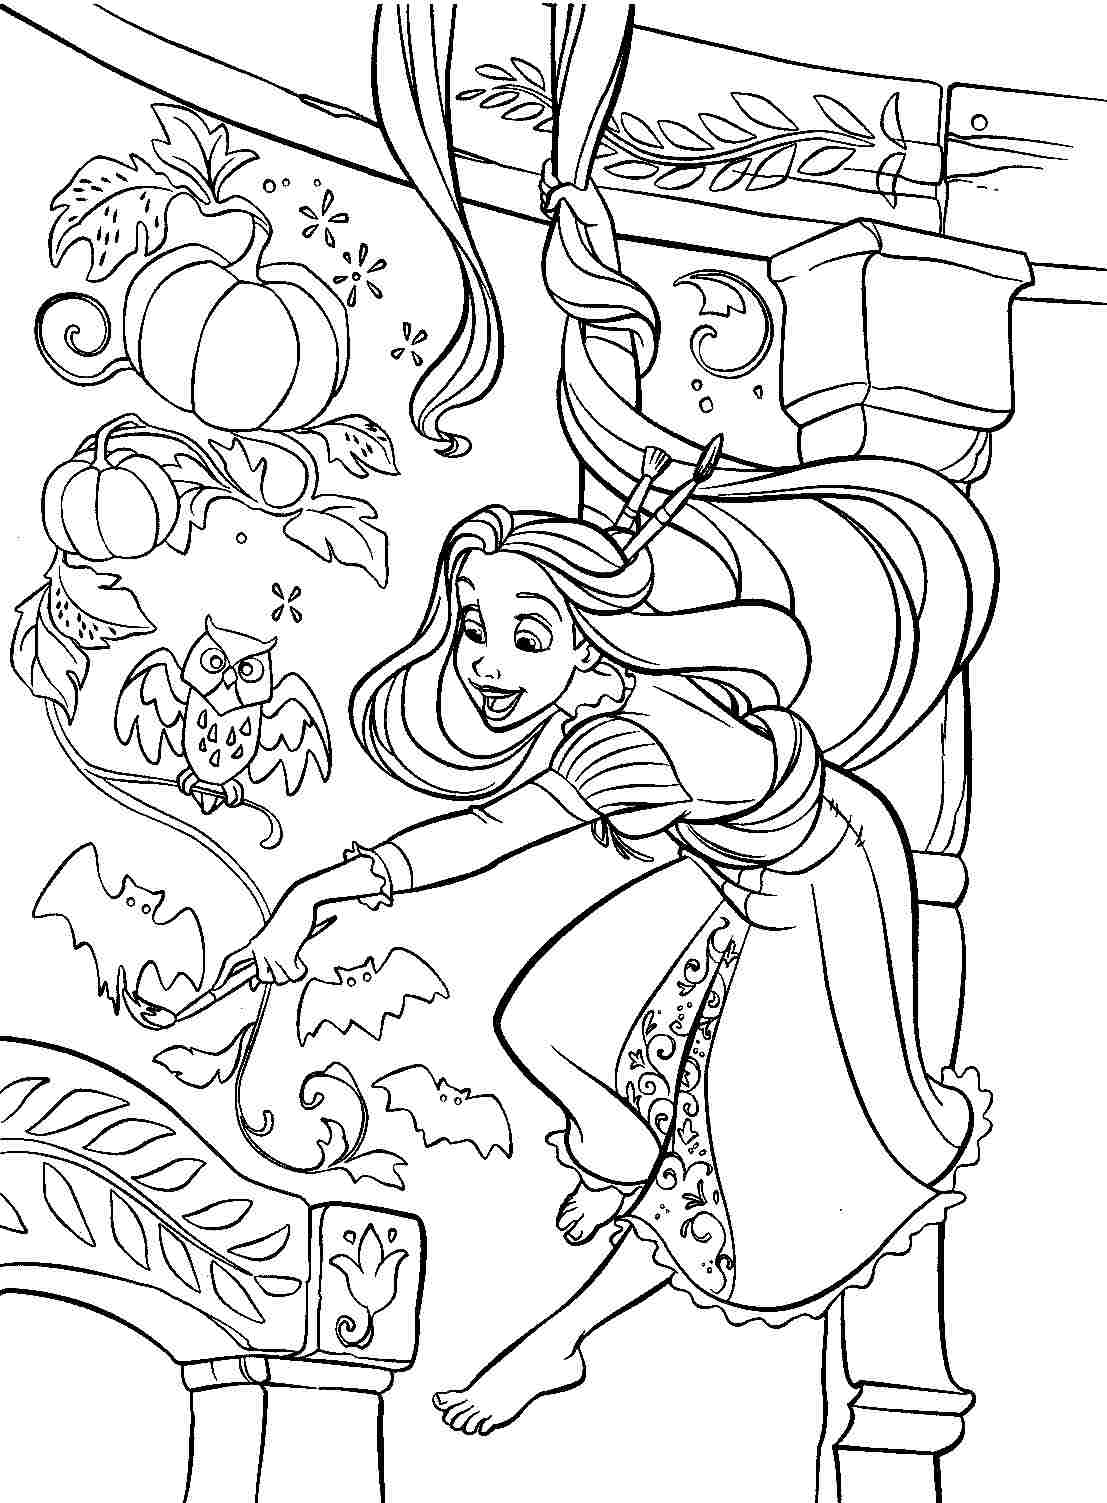 tangled coloring rapunzel coloring pages print and colorcom coloring tangled 1 1